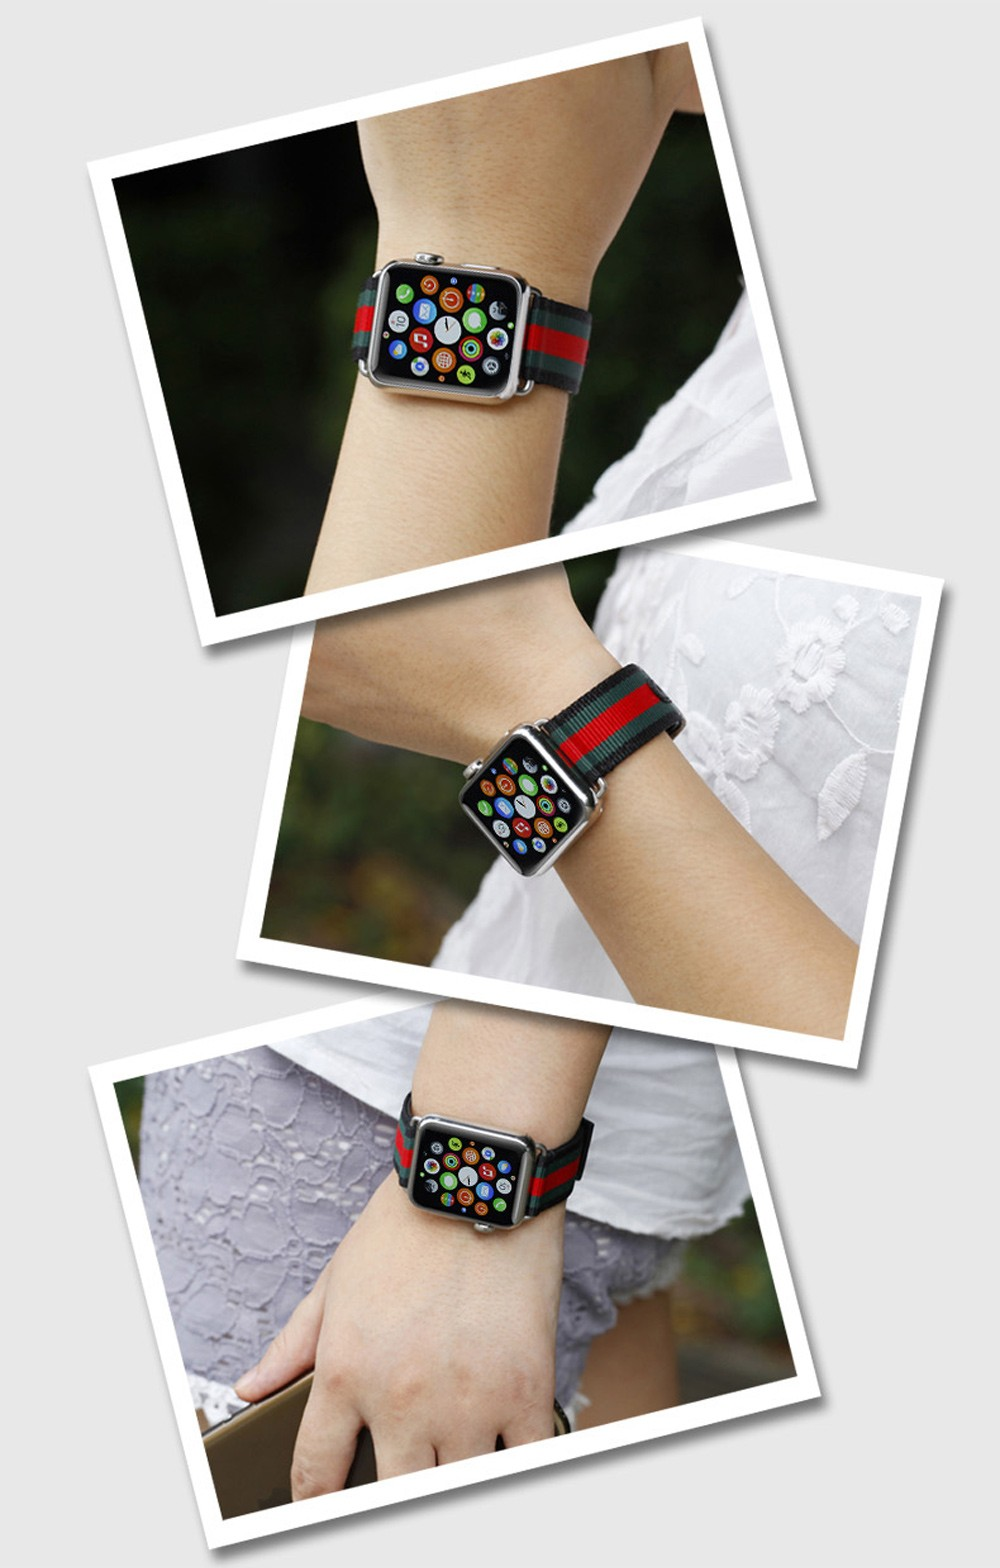 Leisure Colorful Style PU Leather Watchband for Apple Watch 42mm Ultra-thin Strap Wristband Replacement